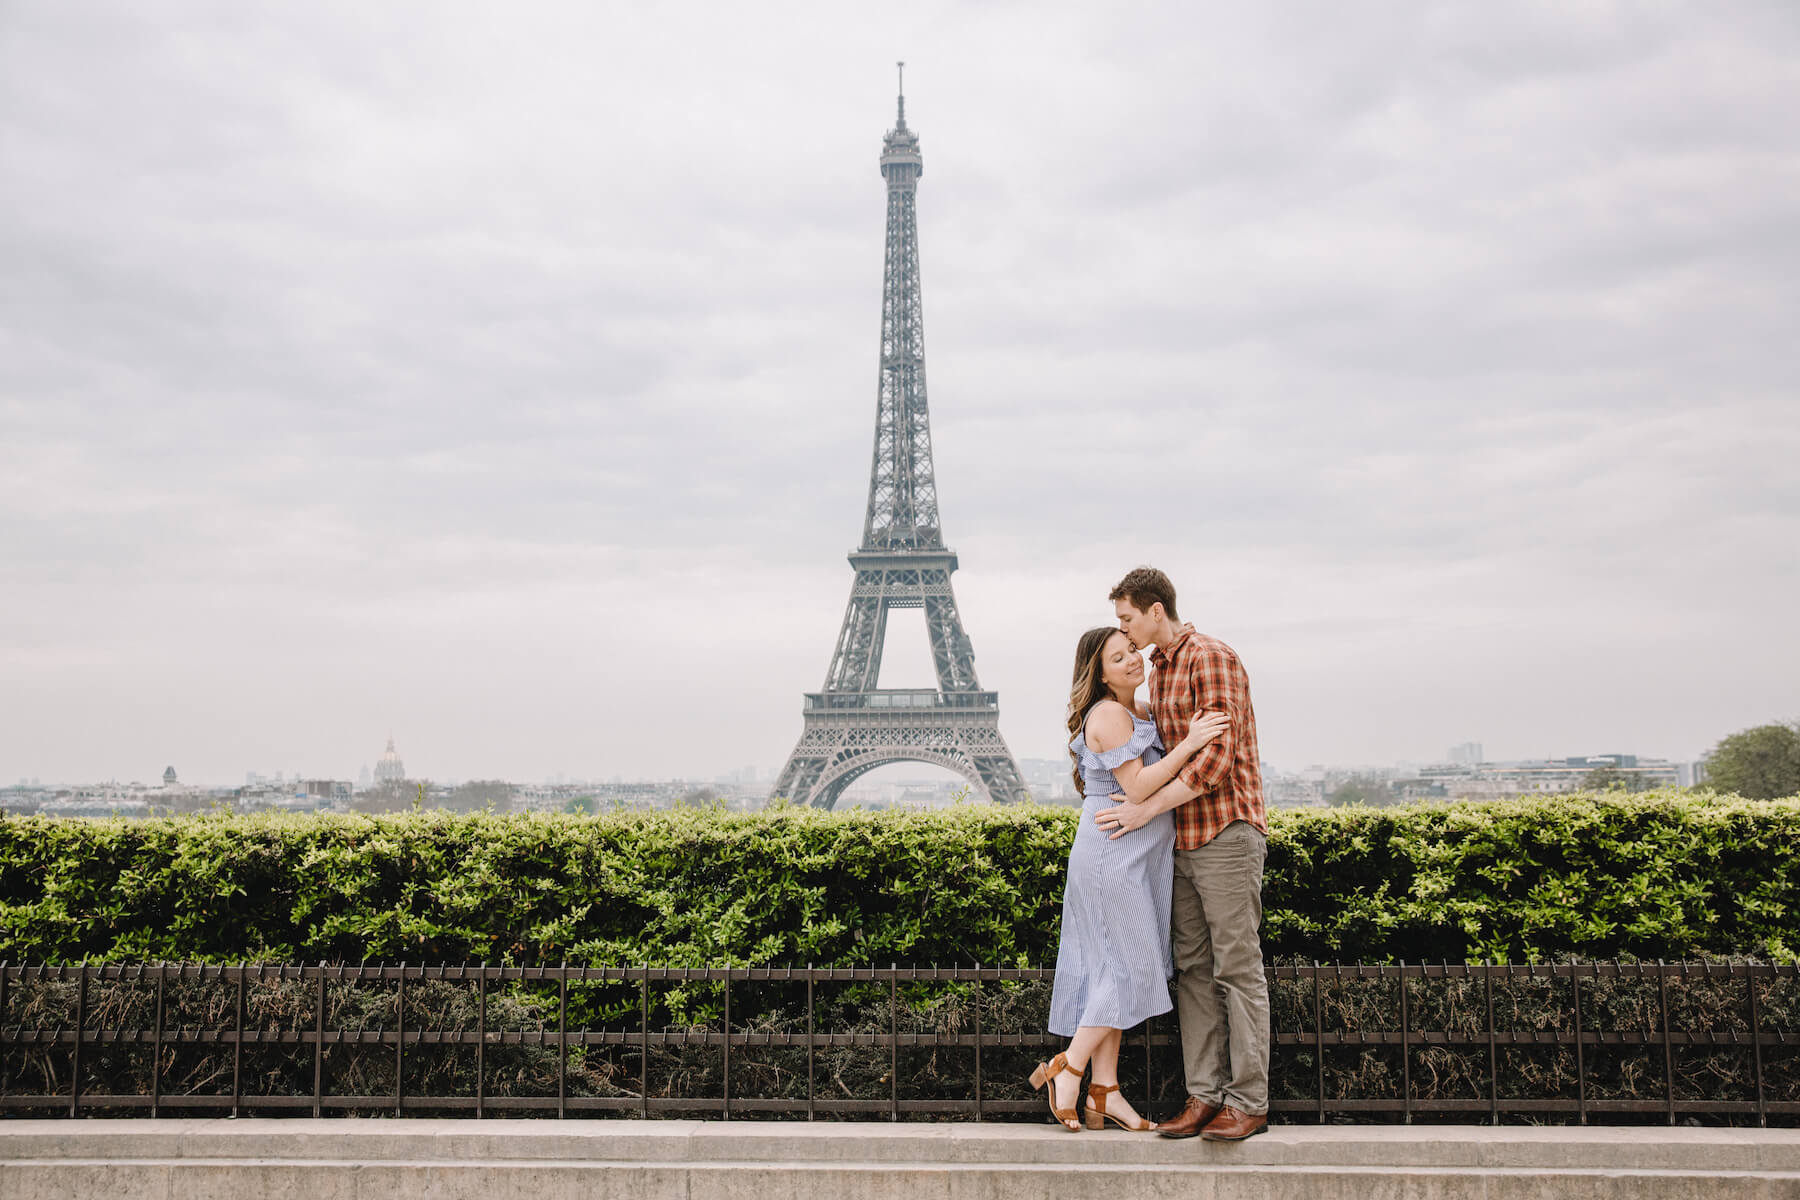 Couple hugging, the woman is pregnant, standing in front of the Eiffel Tower in Paris, France